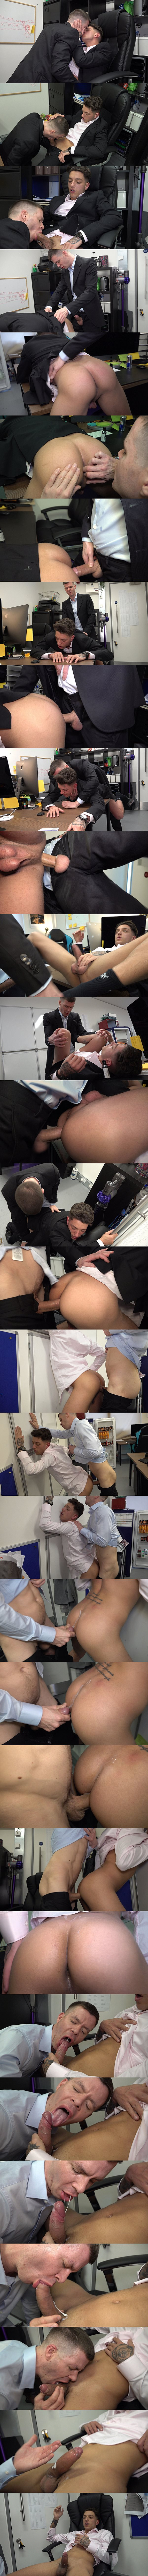 Hung Young Brit barebacks cute British lad Joey's tight bubble ass before he breeds Joey and eats Joey's load in an office theme scene at Hungyoungbrit 01